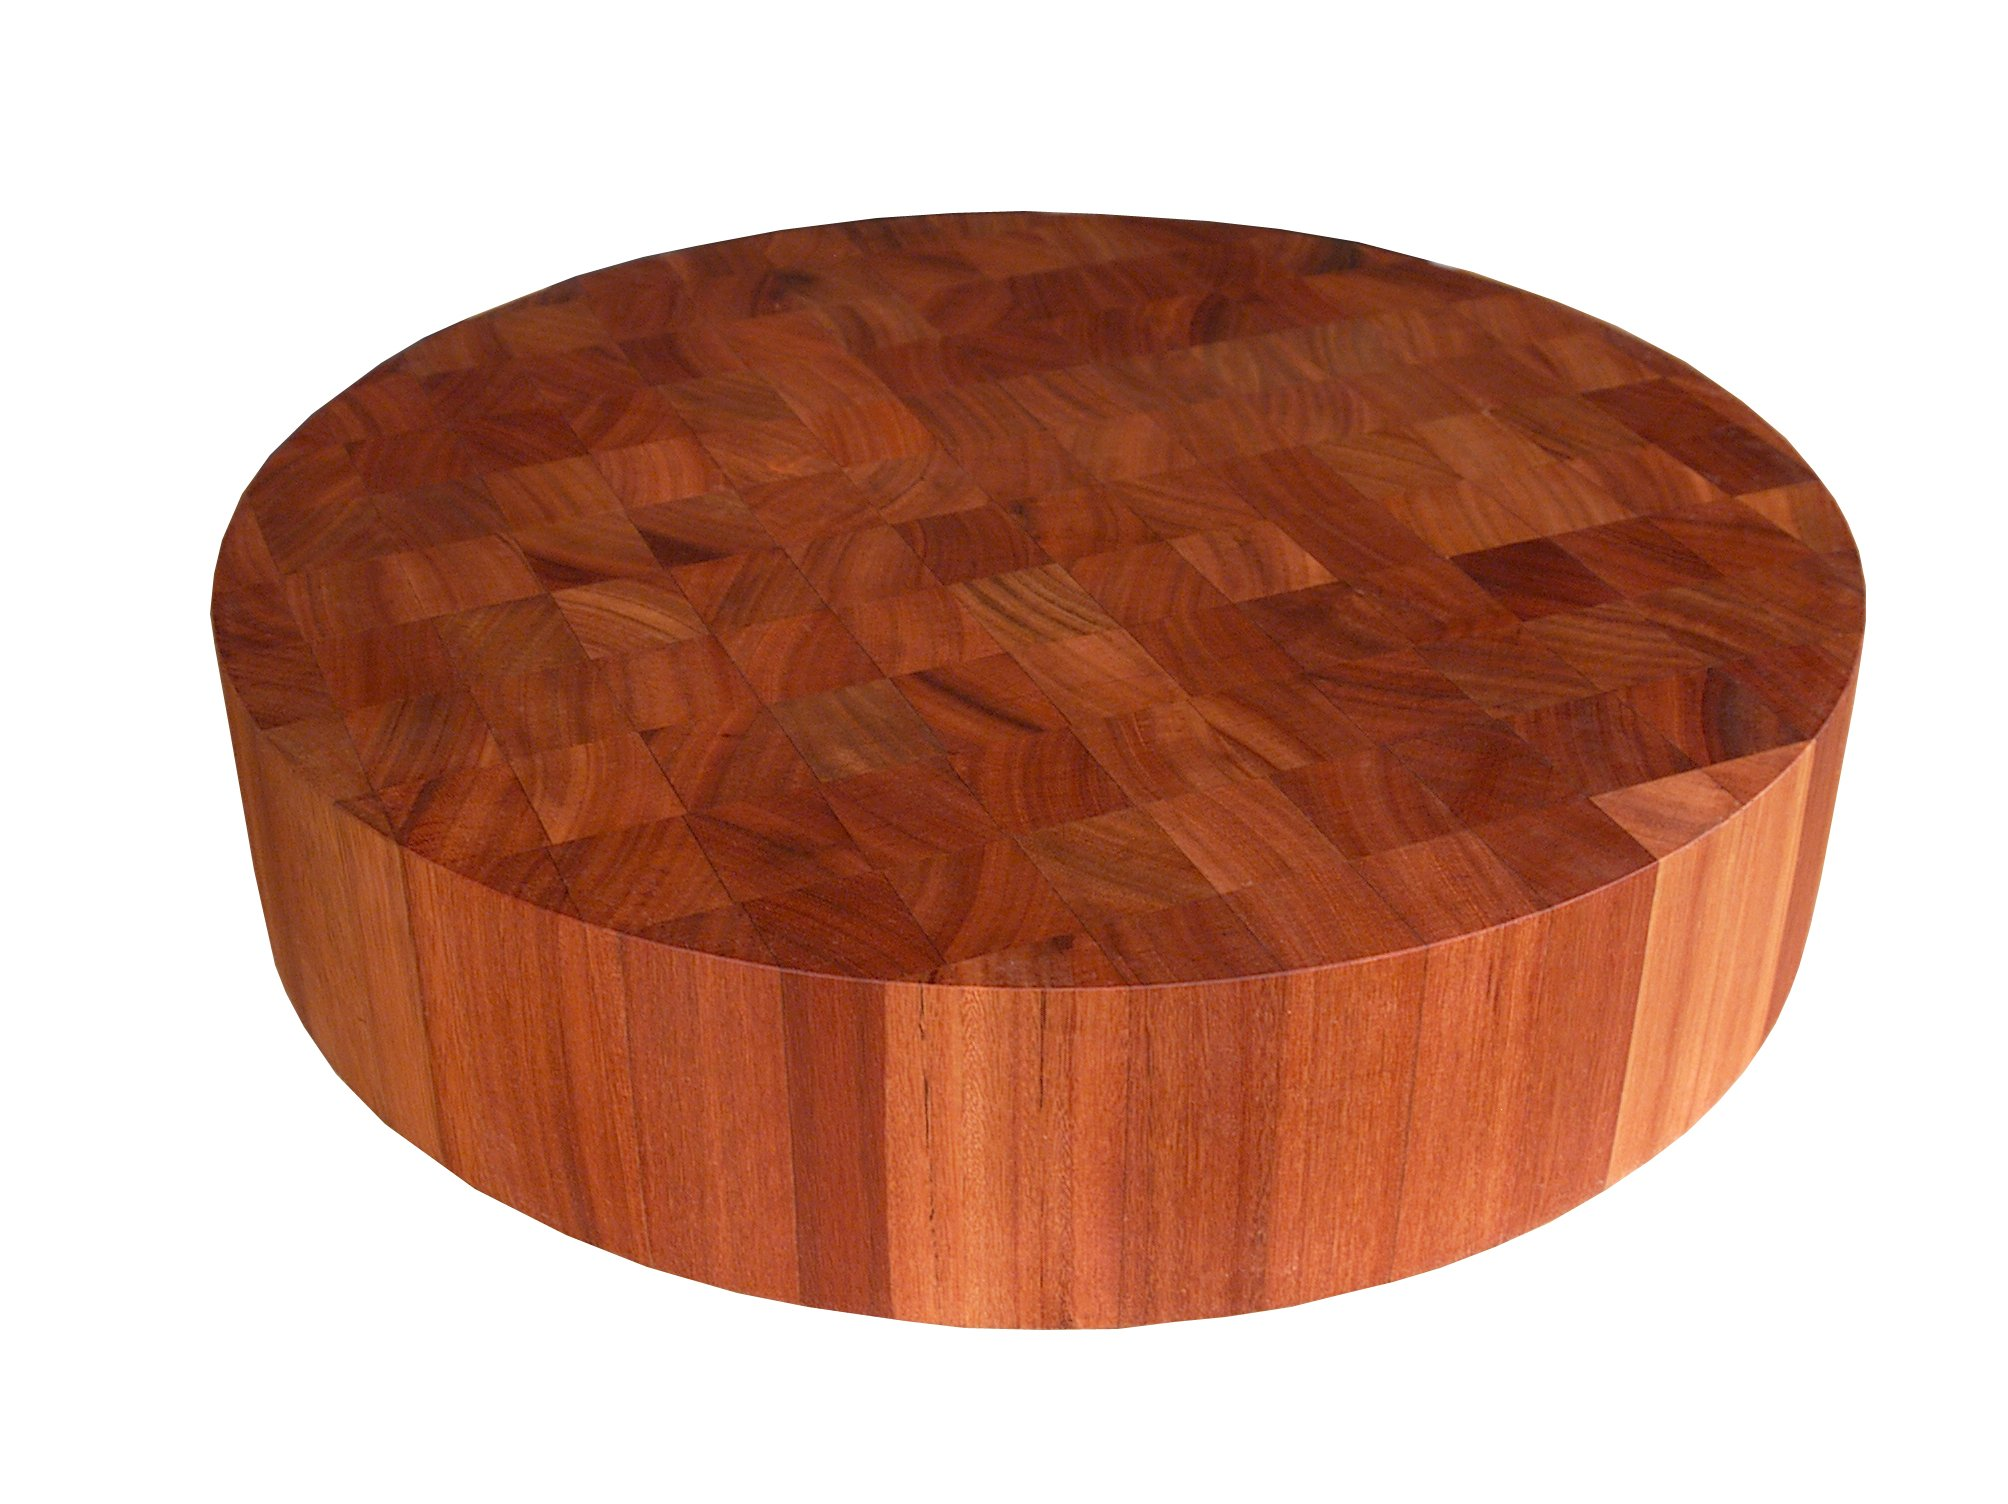 John Boos Cherry Wood End Grain Round Butcher Block Cutting Board, 18 Inches Round x 3 Inches